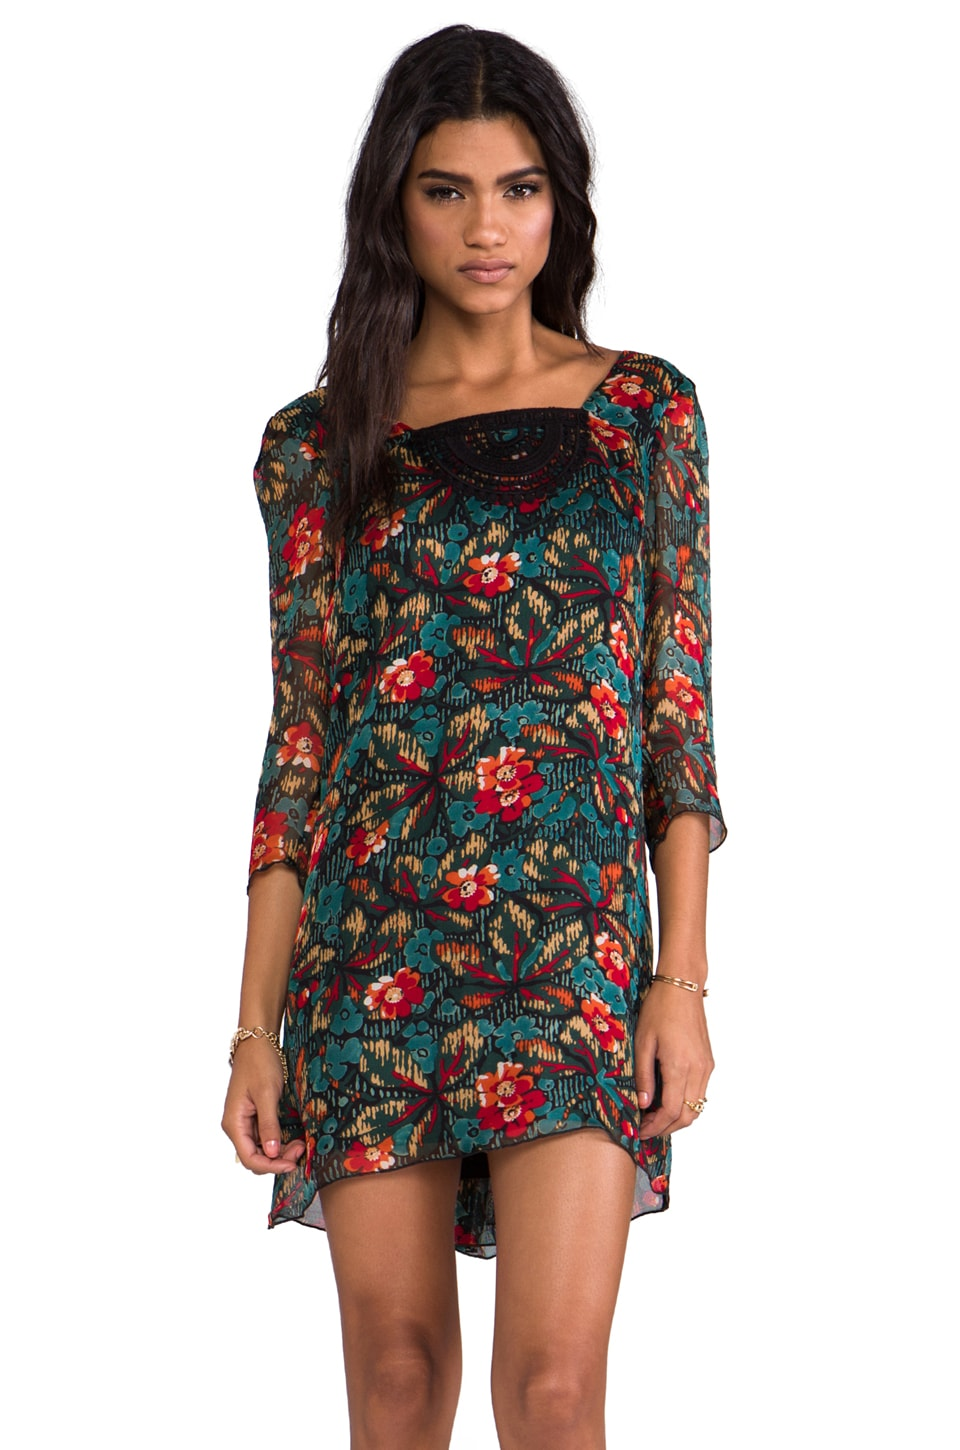 Anna Sui Fauve Floral Print Gauze Dress in Forest Green Multi